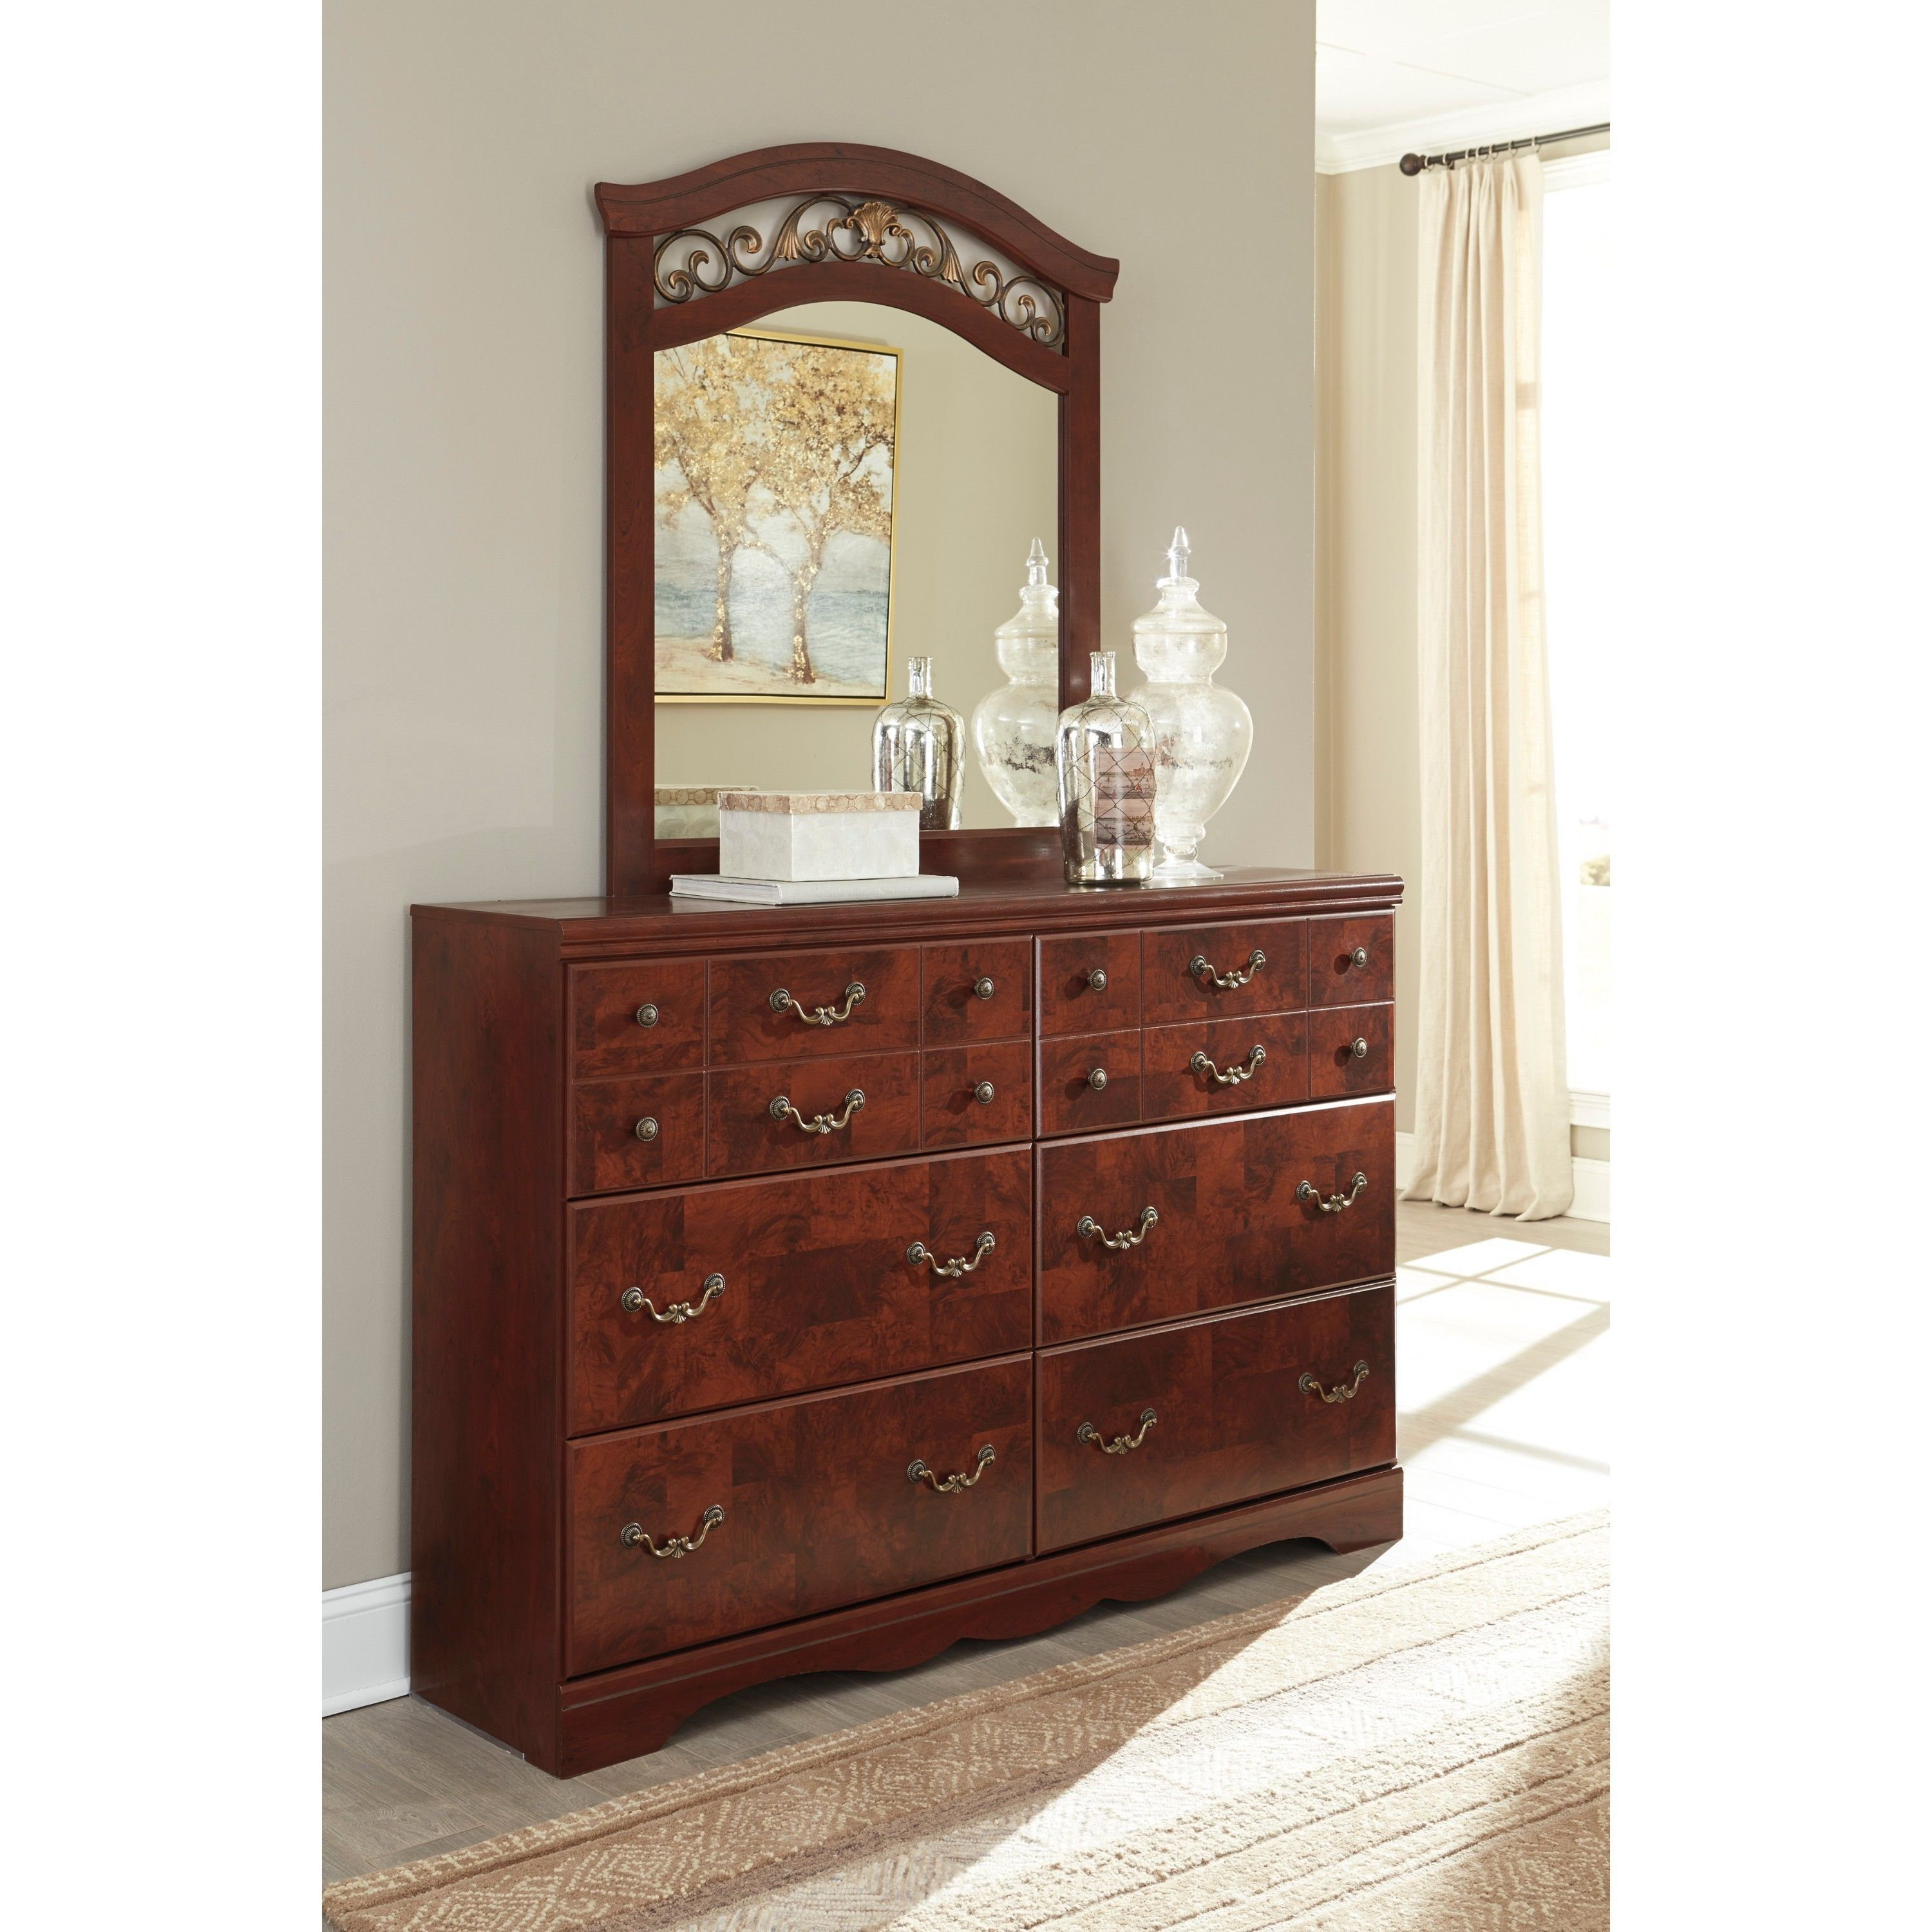 Signature design by ashley delianna brown dresser with mirror dresser with mirror